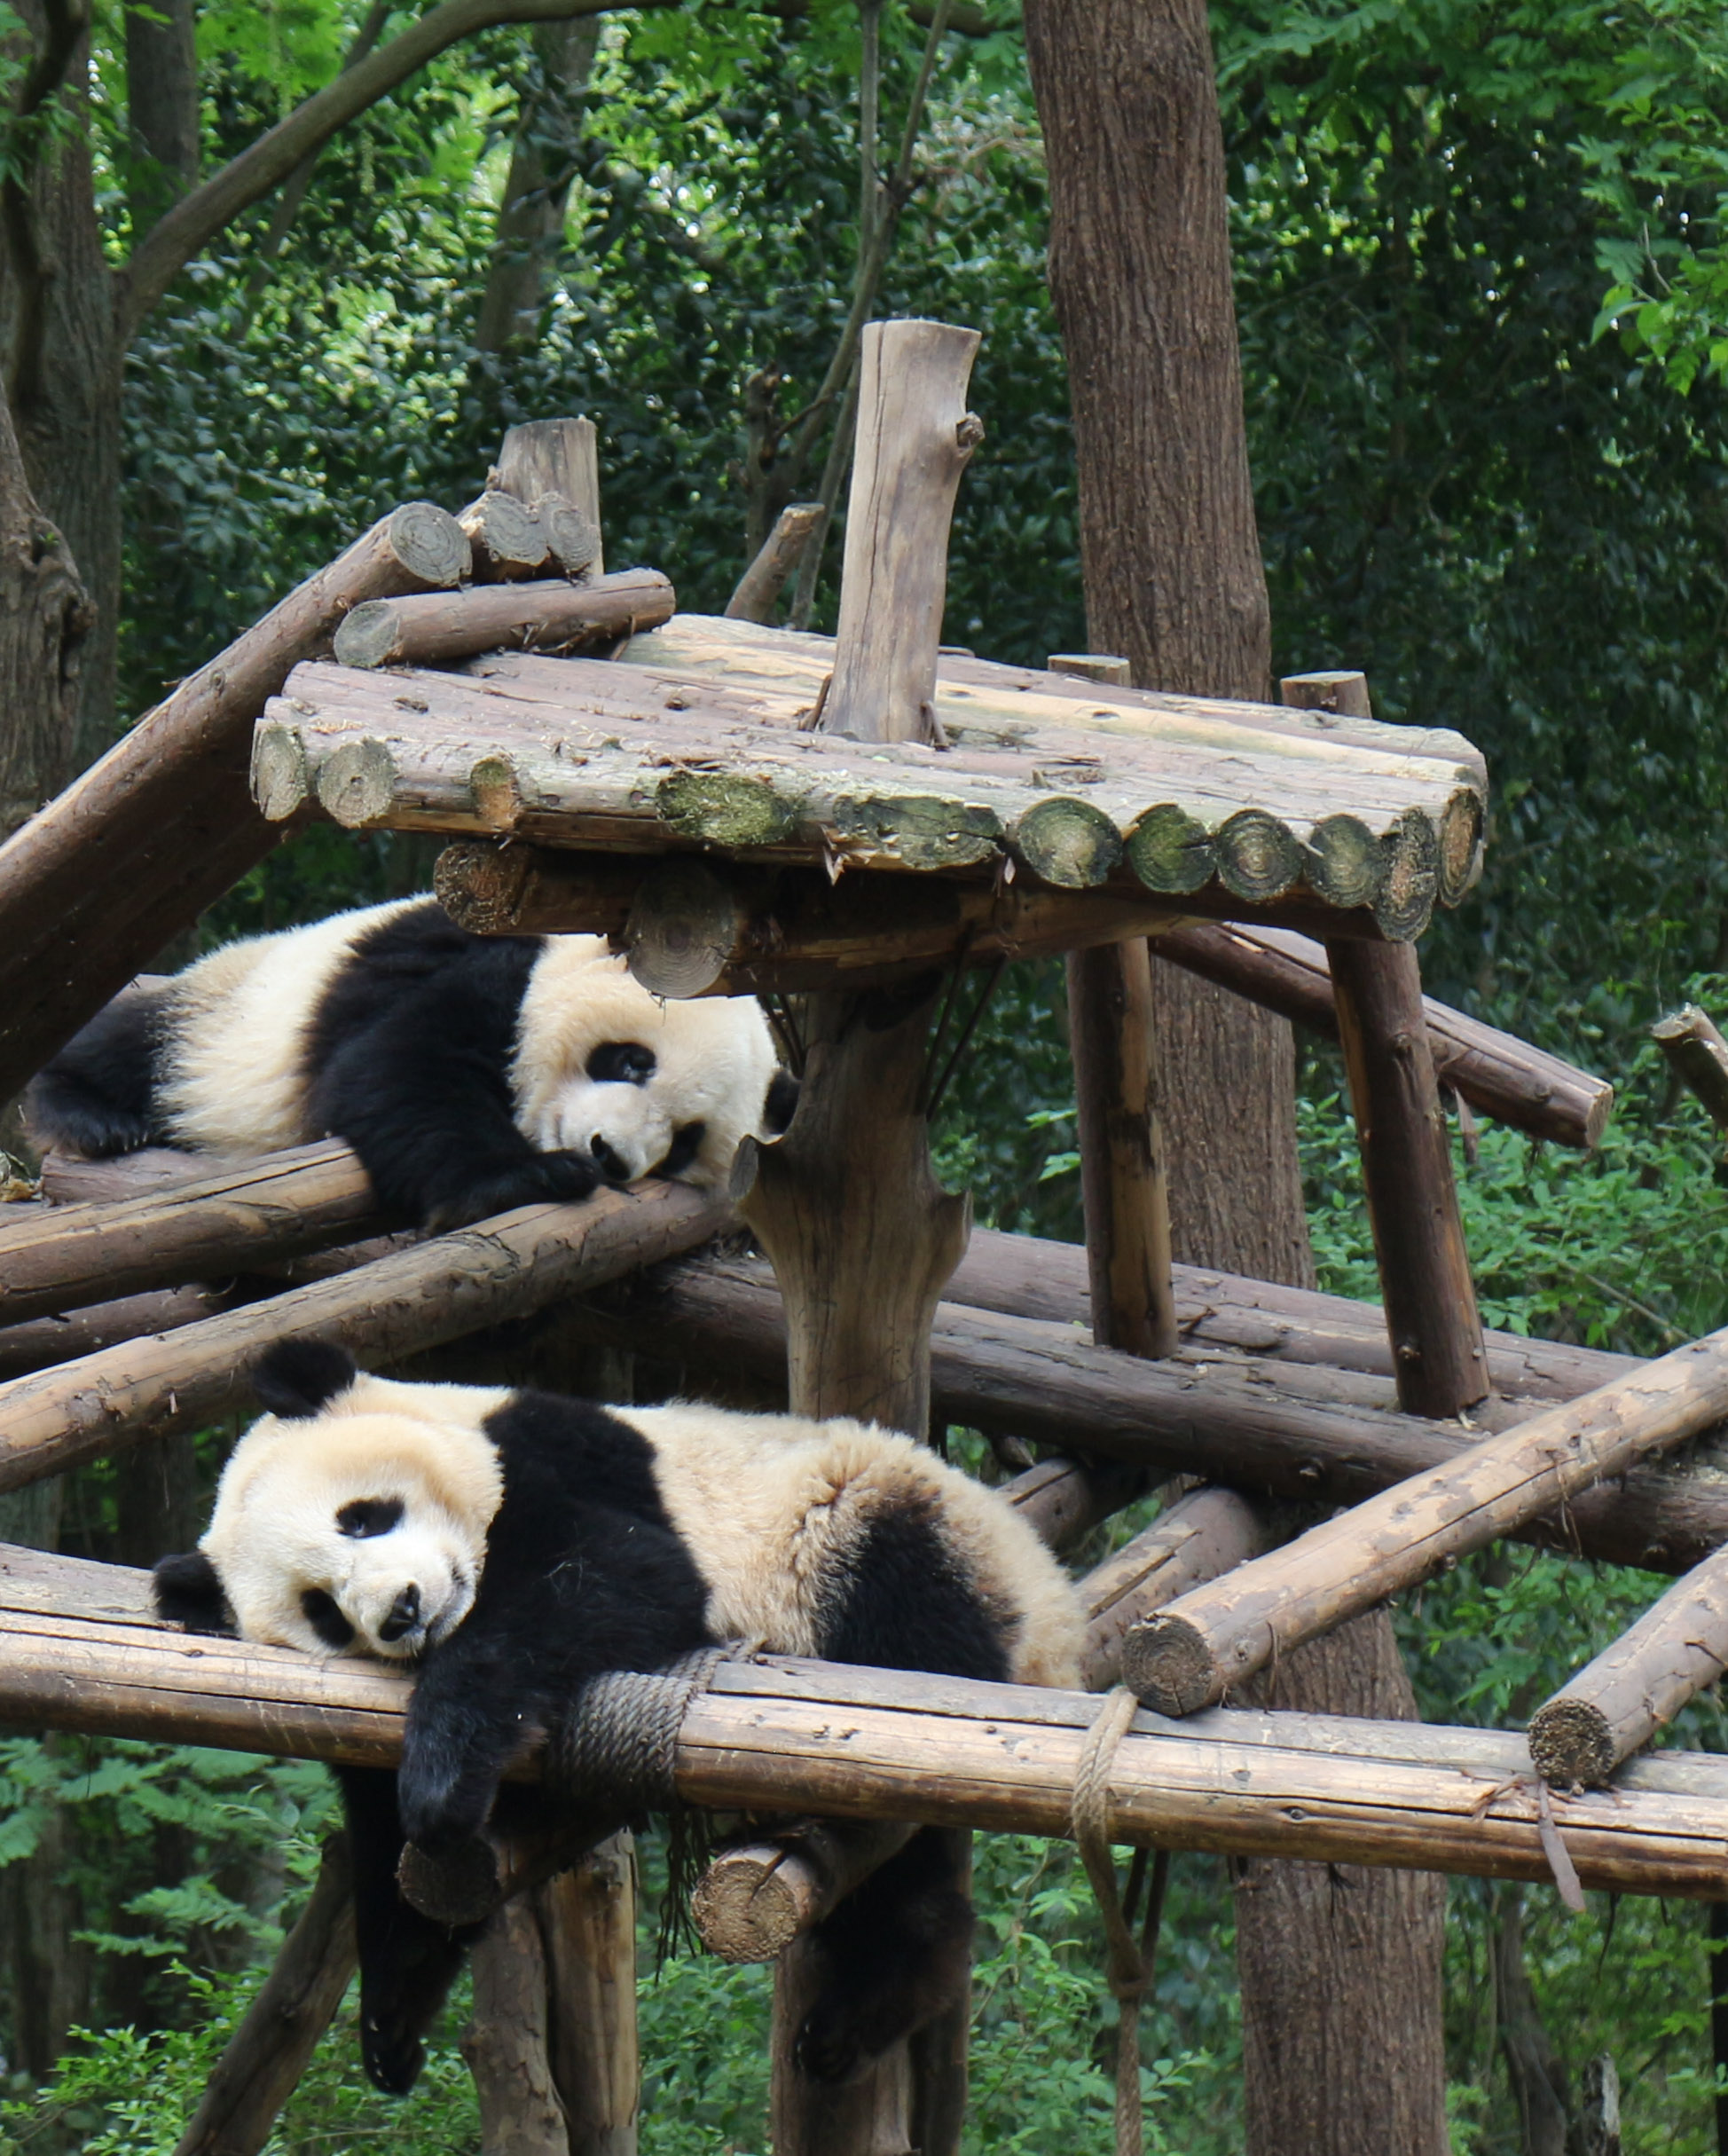 sleeping giant pandas